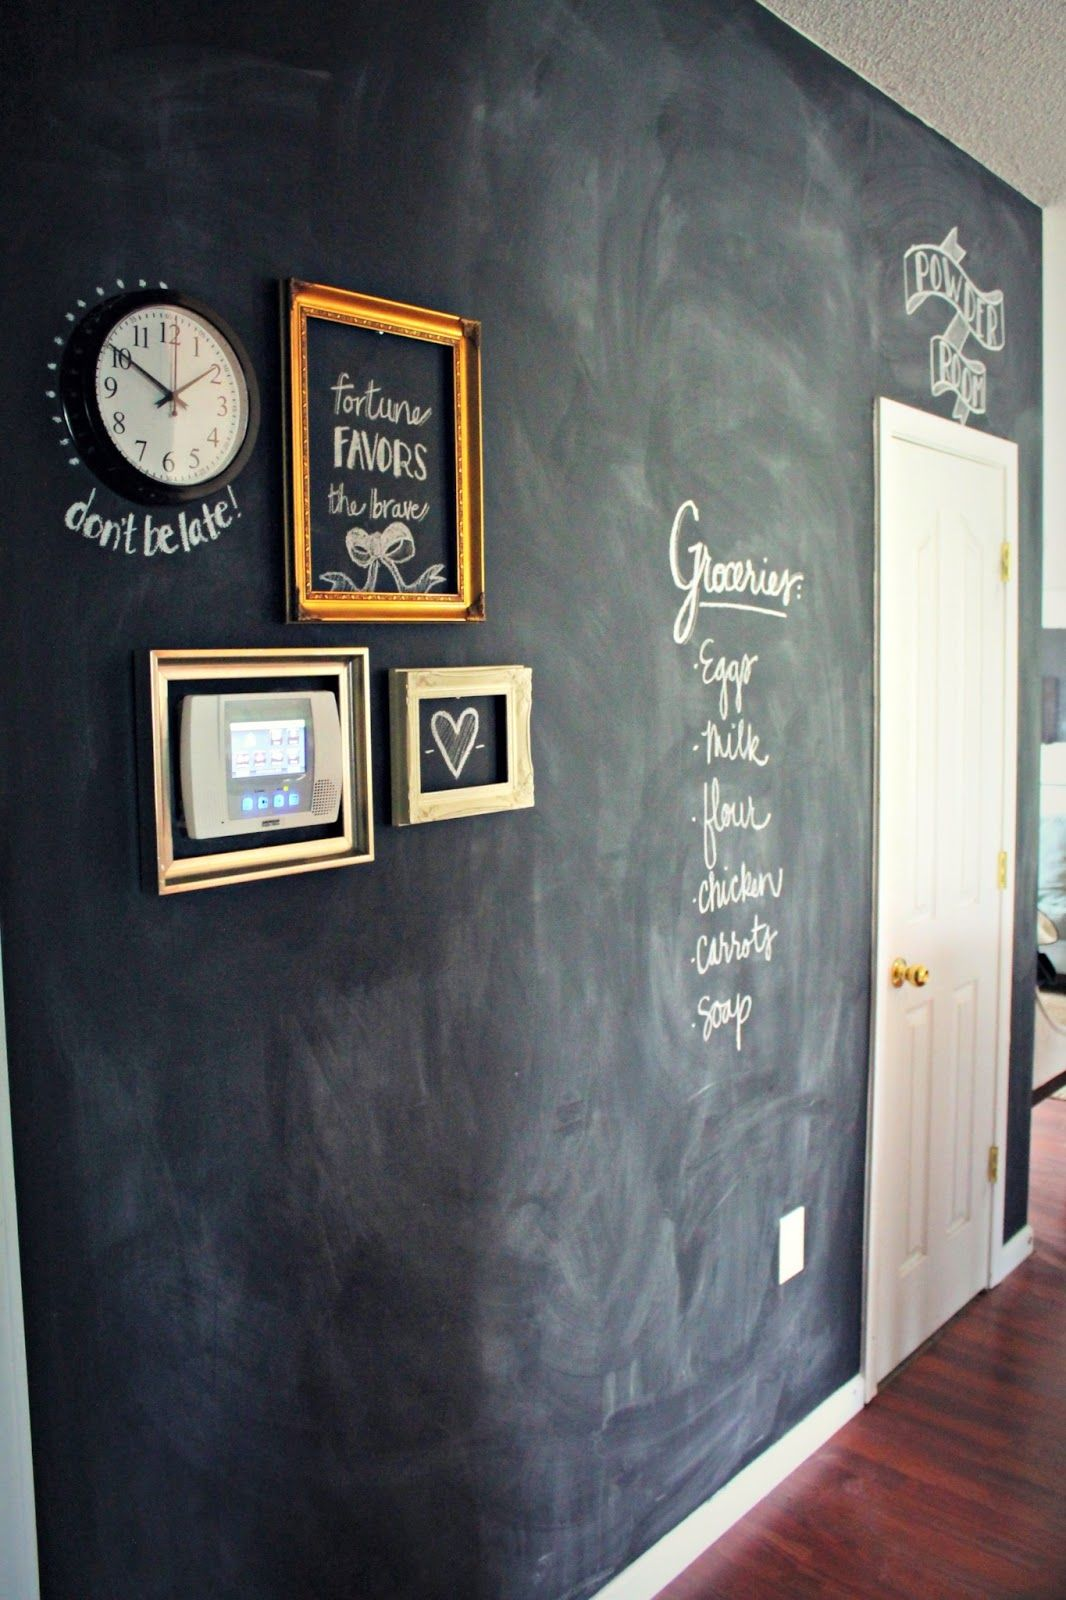 Tafel Für Notizen Küche Diy Chalkboard Hallway For The Wall Next To Pantry